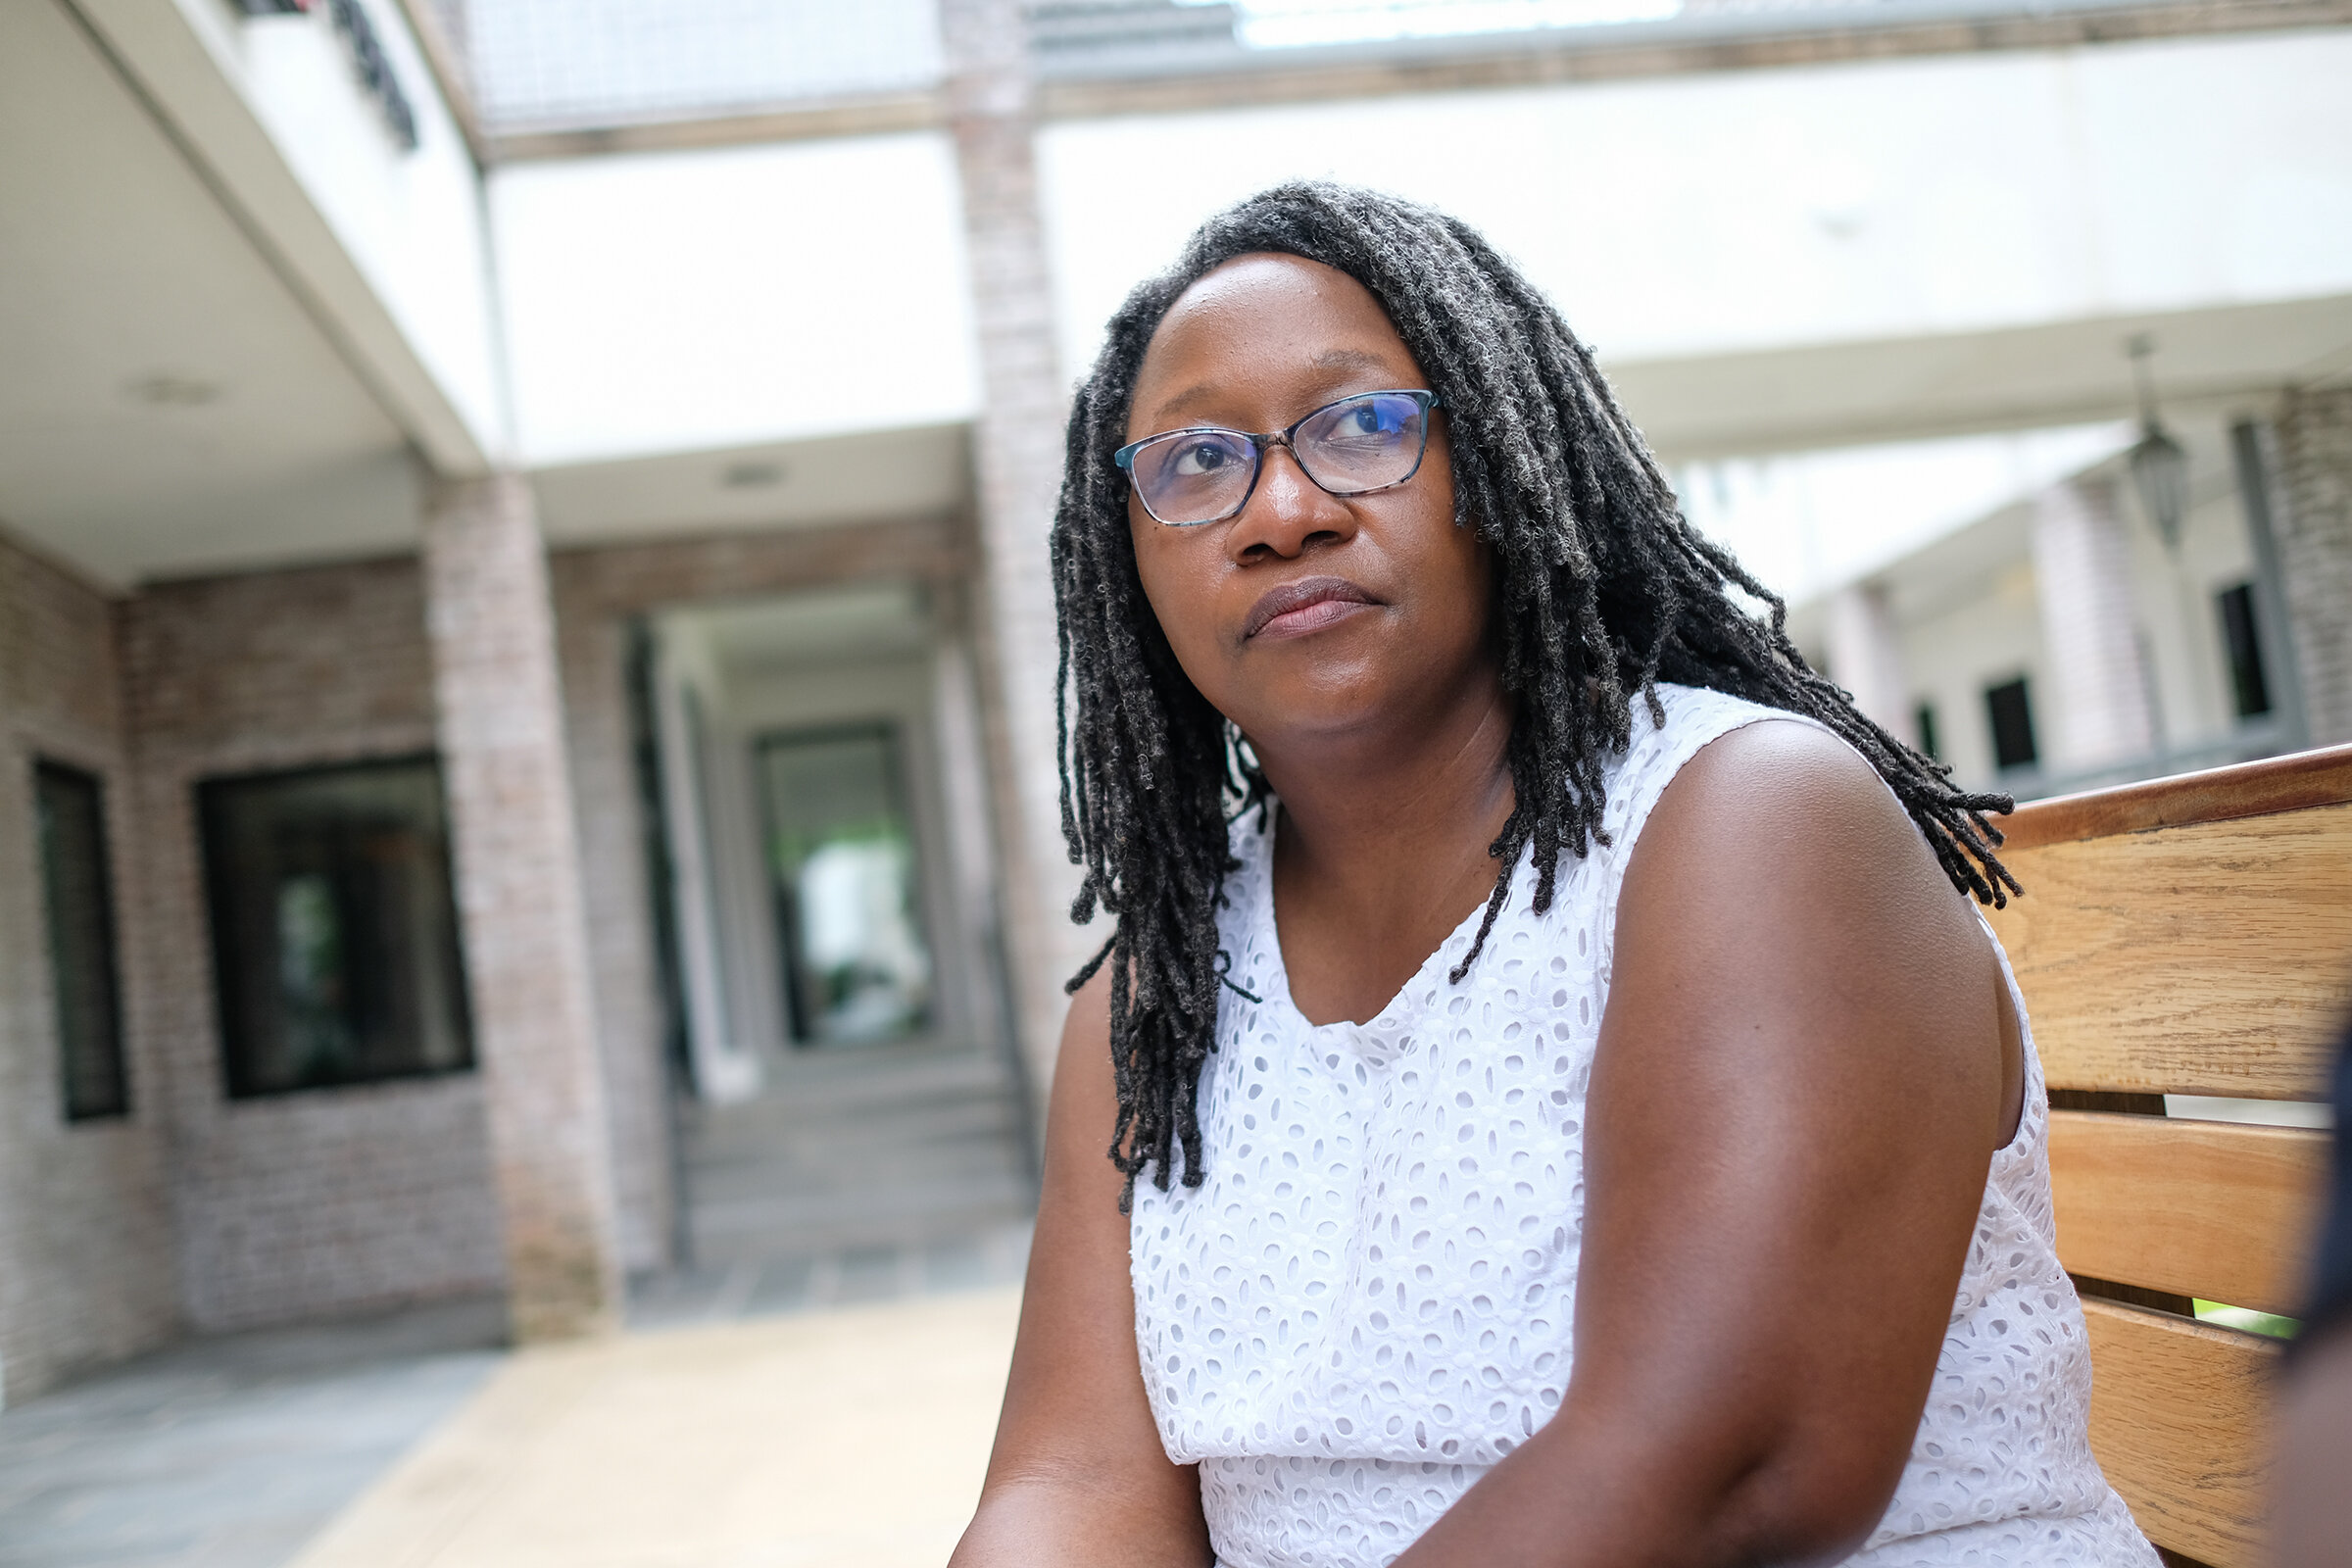 Latasha Willis, 44, has suffered from anxiety and depression since the early 90's. Today she works for the library system and is a NAMI Certified Peer-to-Peer Leader.    Charles A. Smith/Mississippi Center for Investigative Reporting